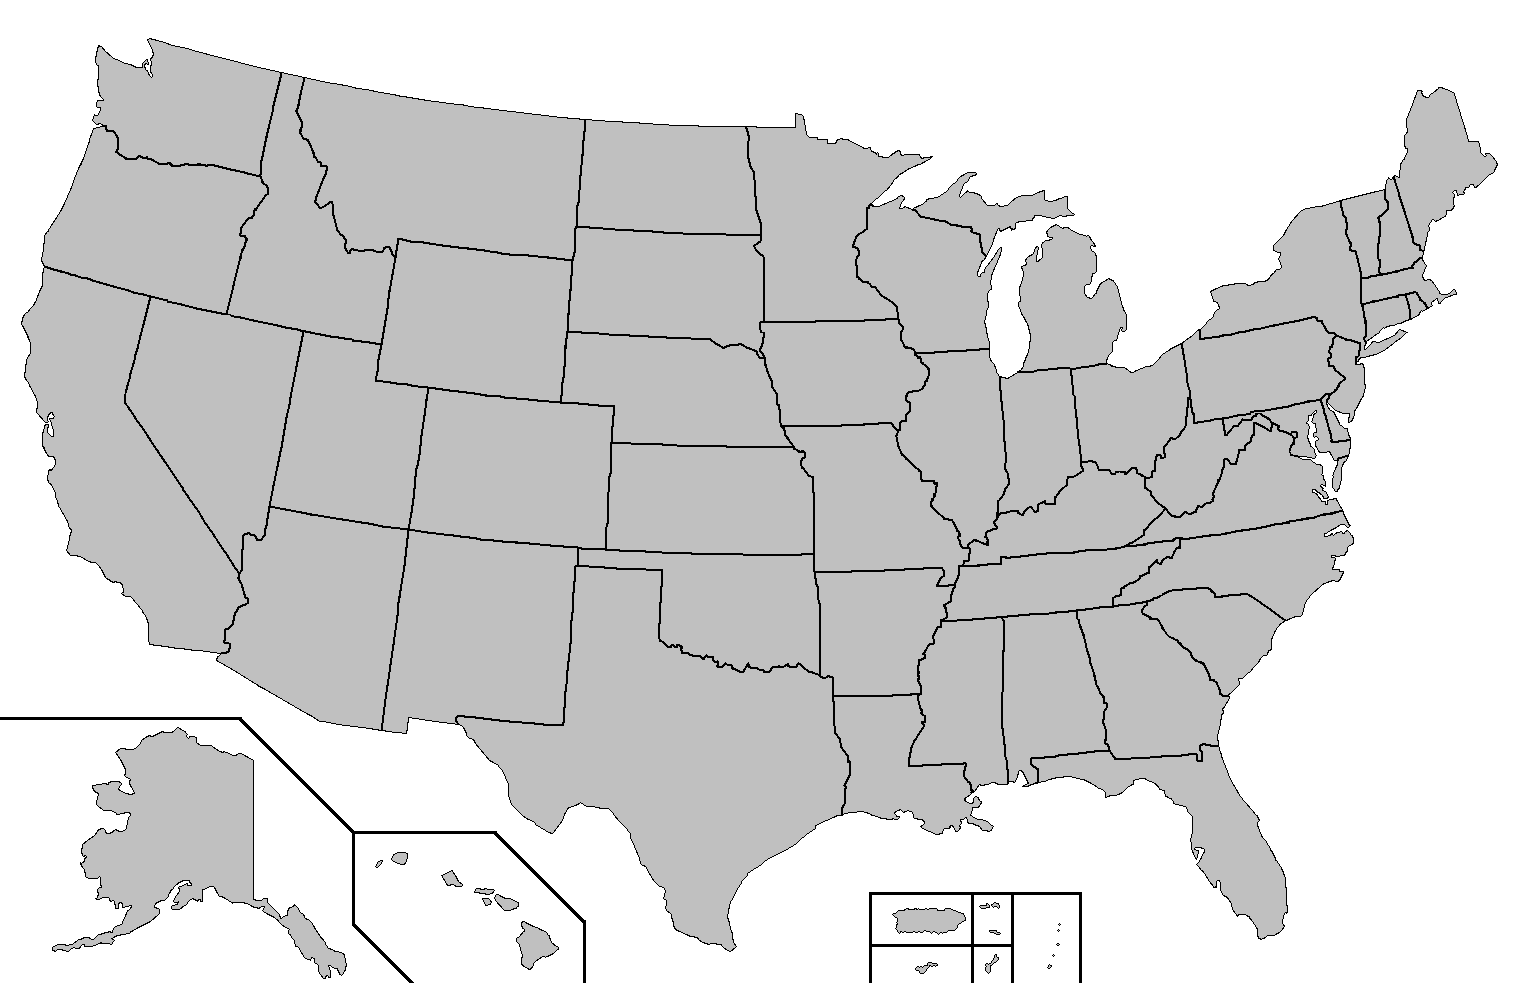 FileBlank map of the United StatesPNG Wikimedia Commons – Map of United States